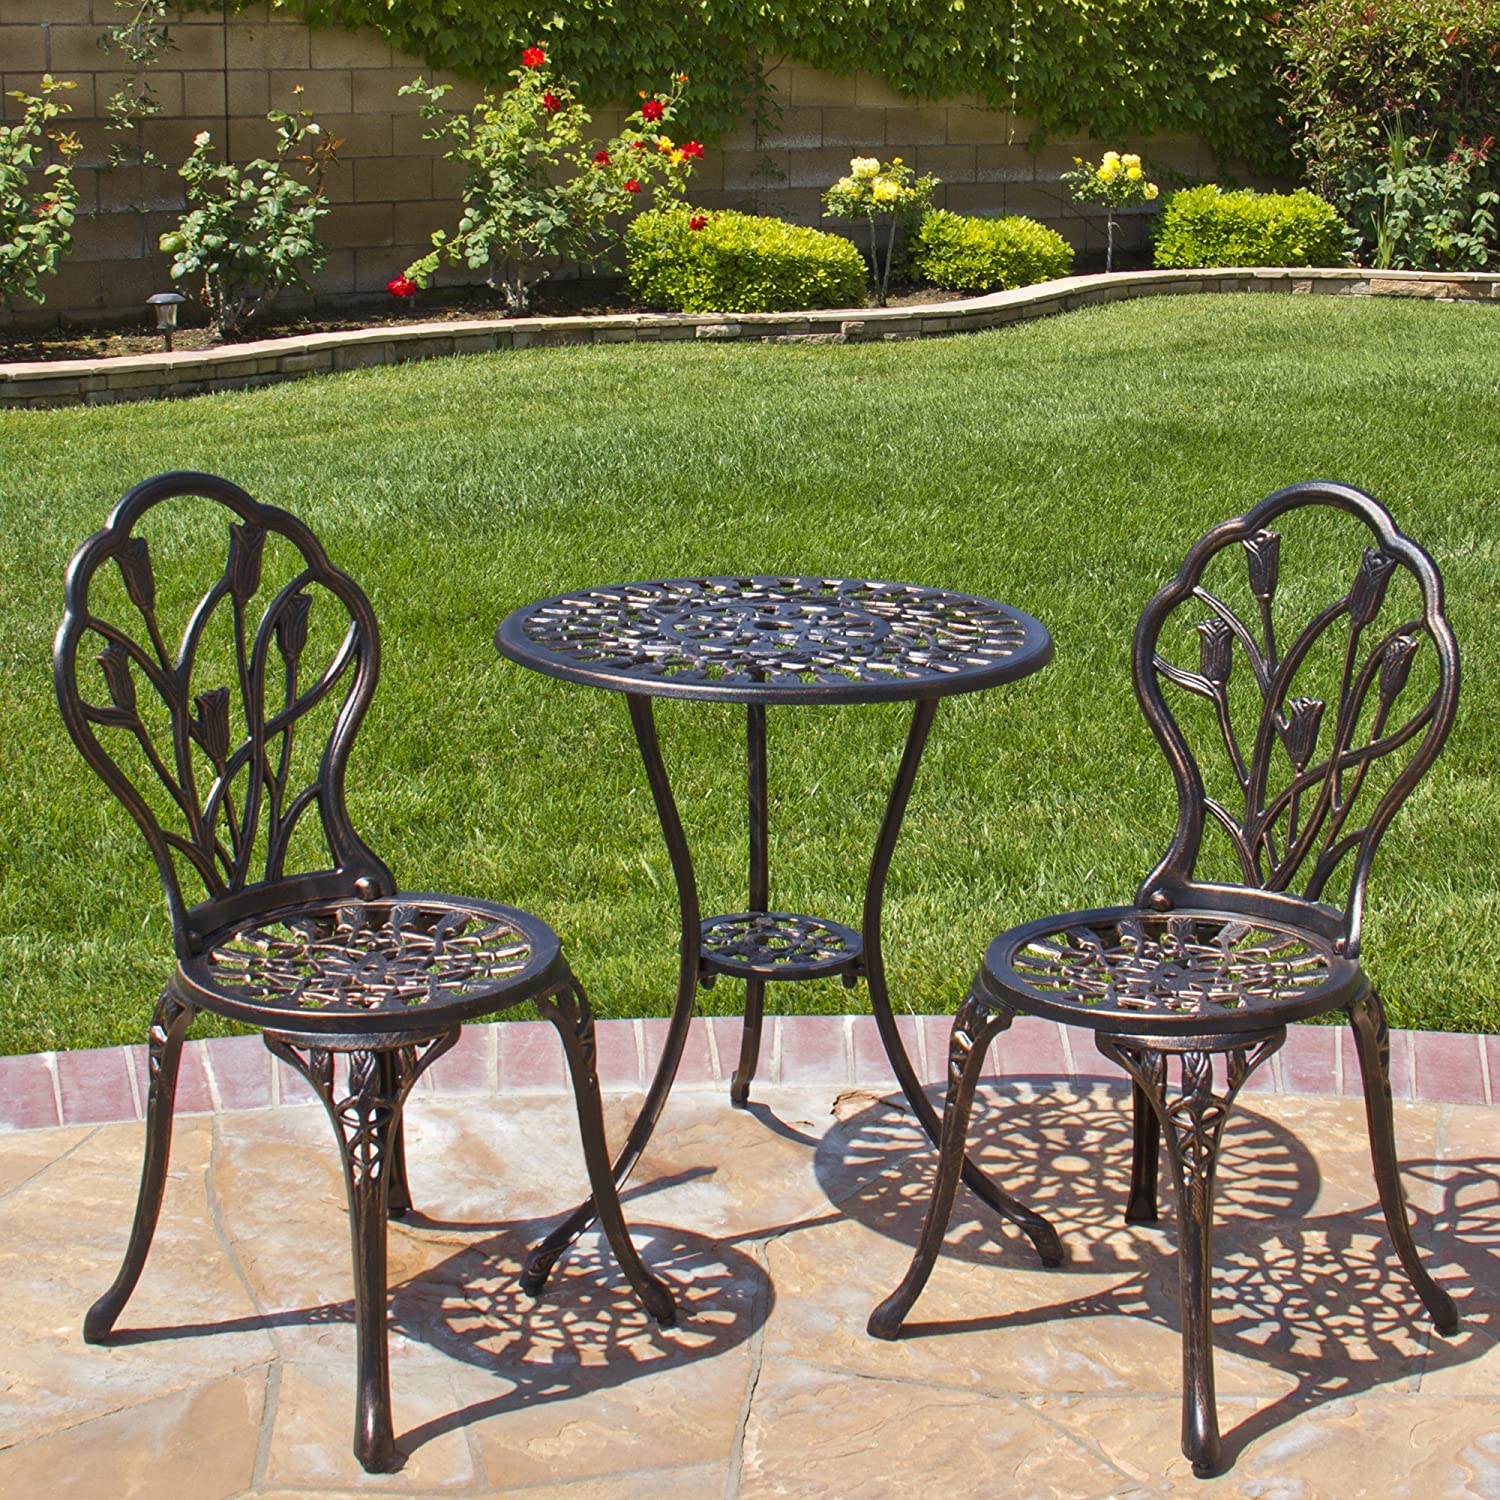 amazoncom best choice products outdoor patio furniture tulip design cast aluminum 3 piece bistro set in antique copper patio lawn u0026 garden